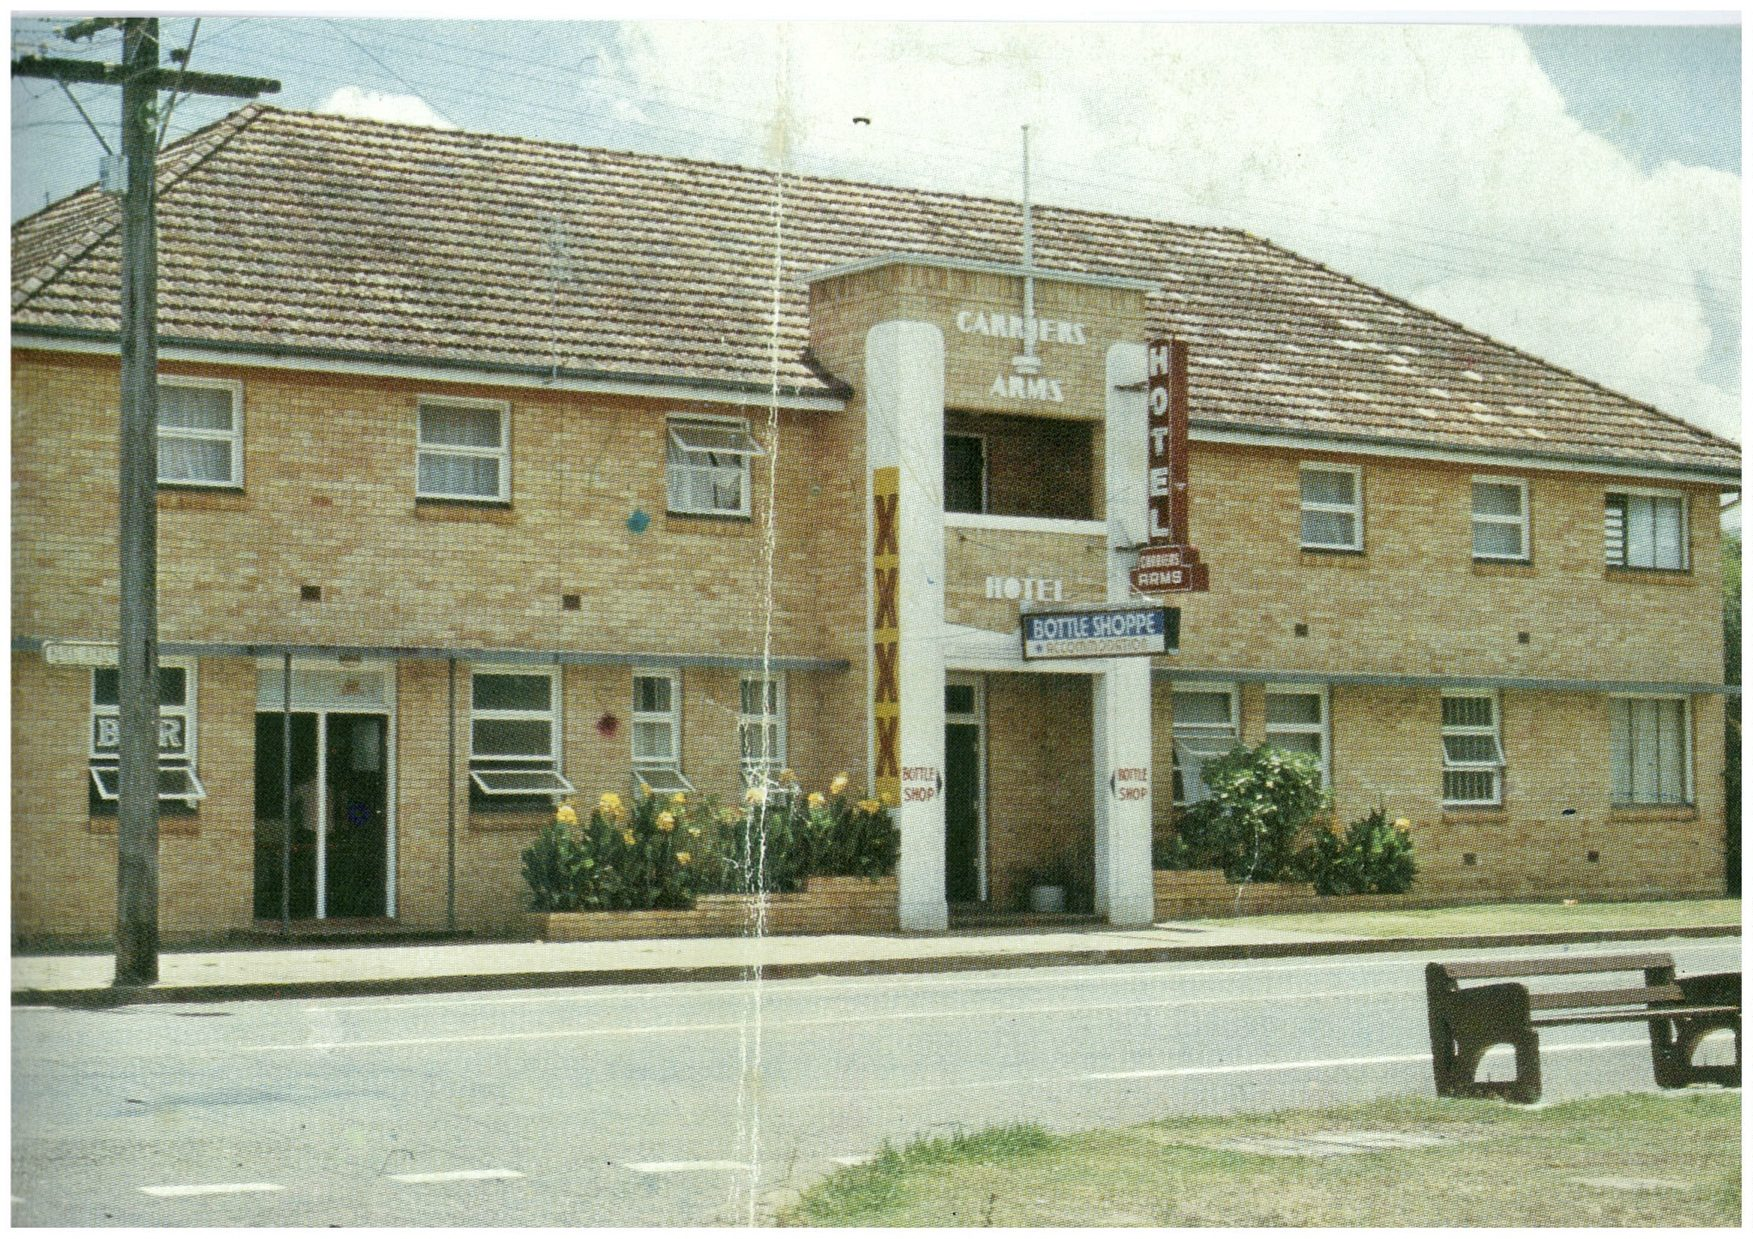 carriers-arms-maryborough